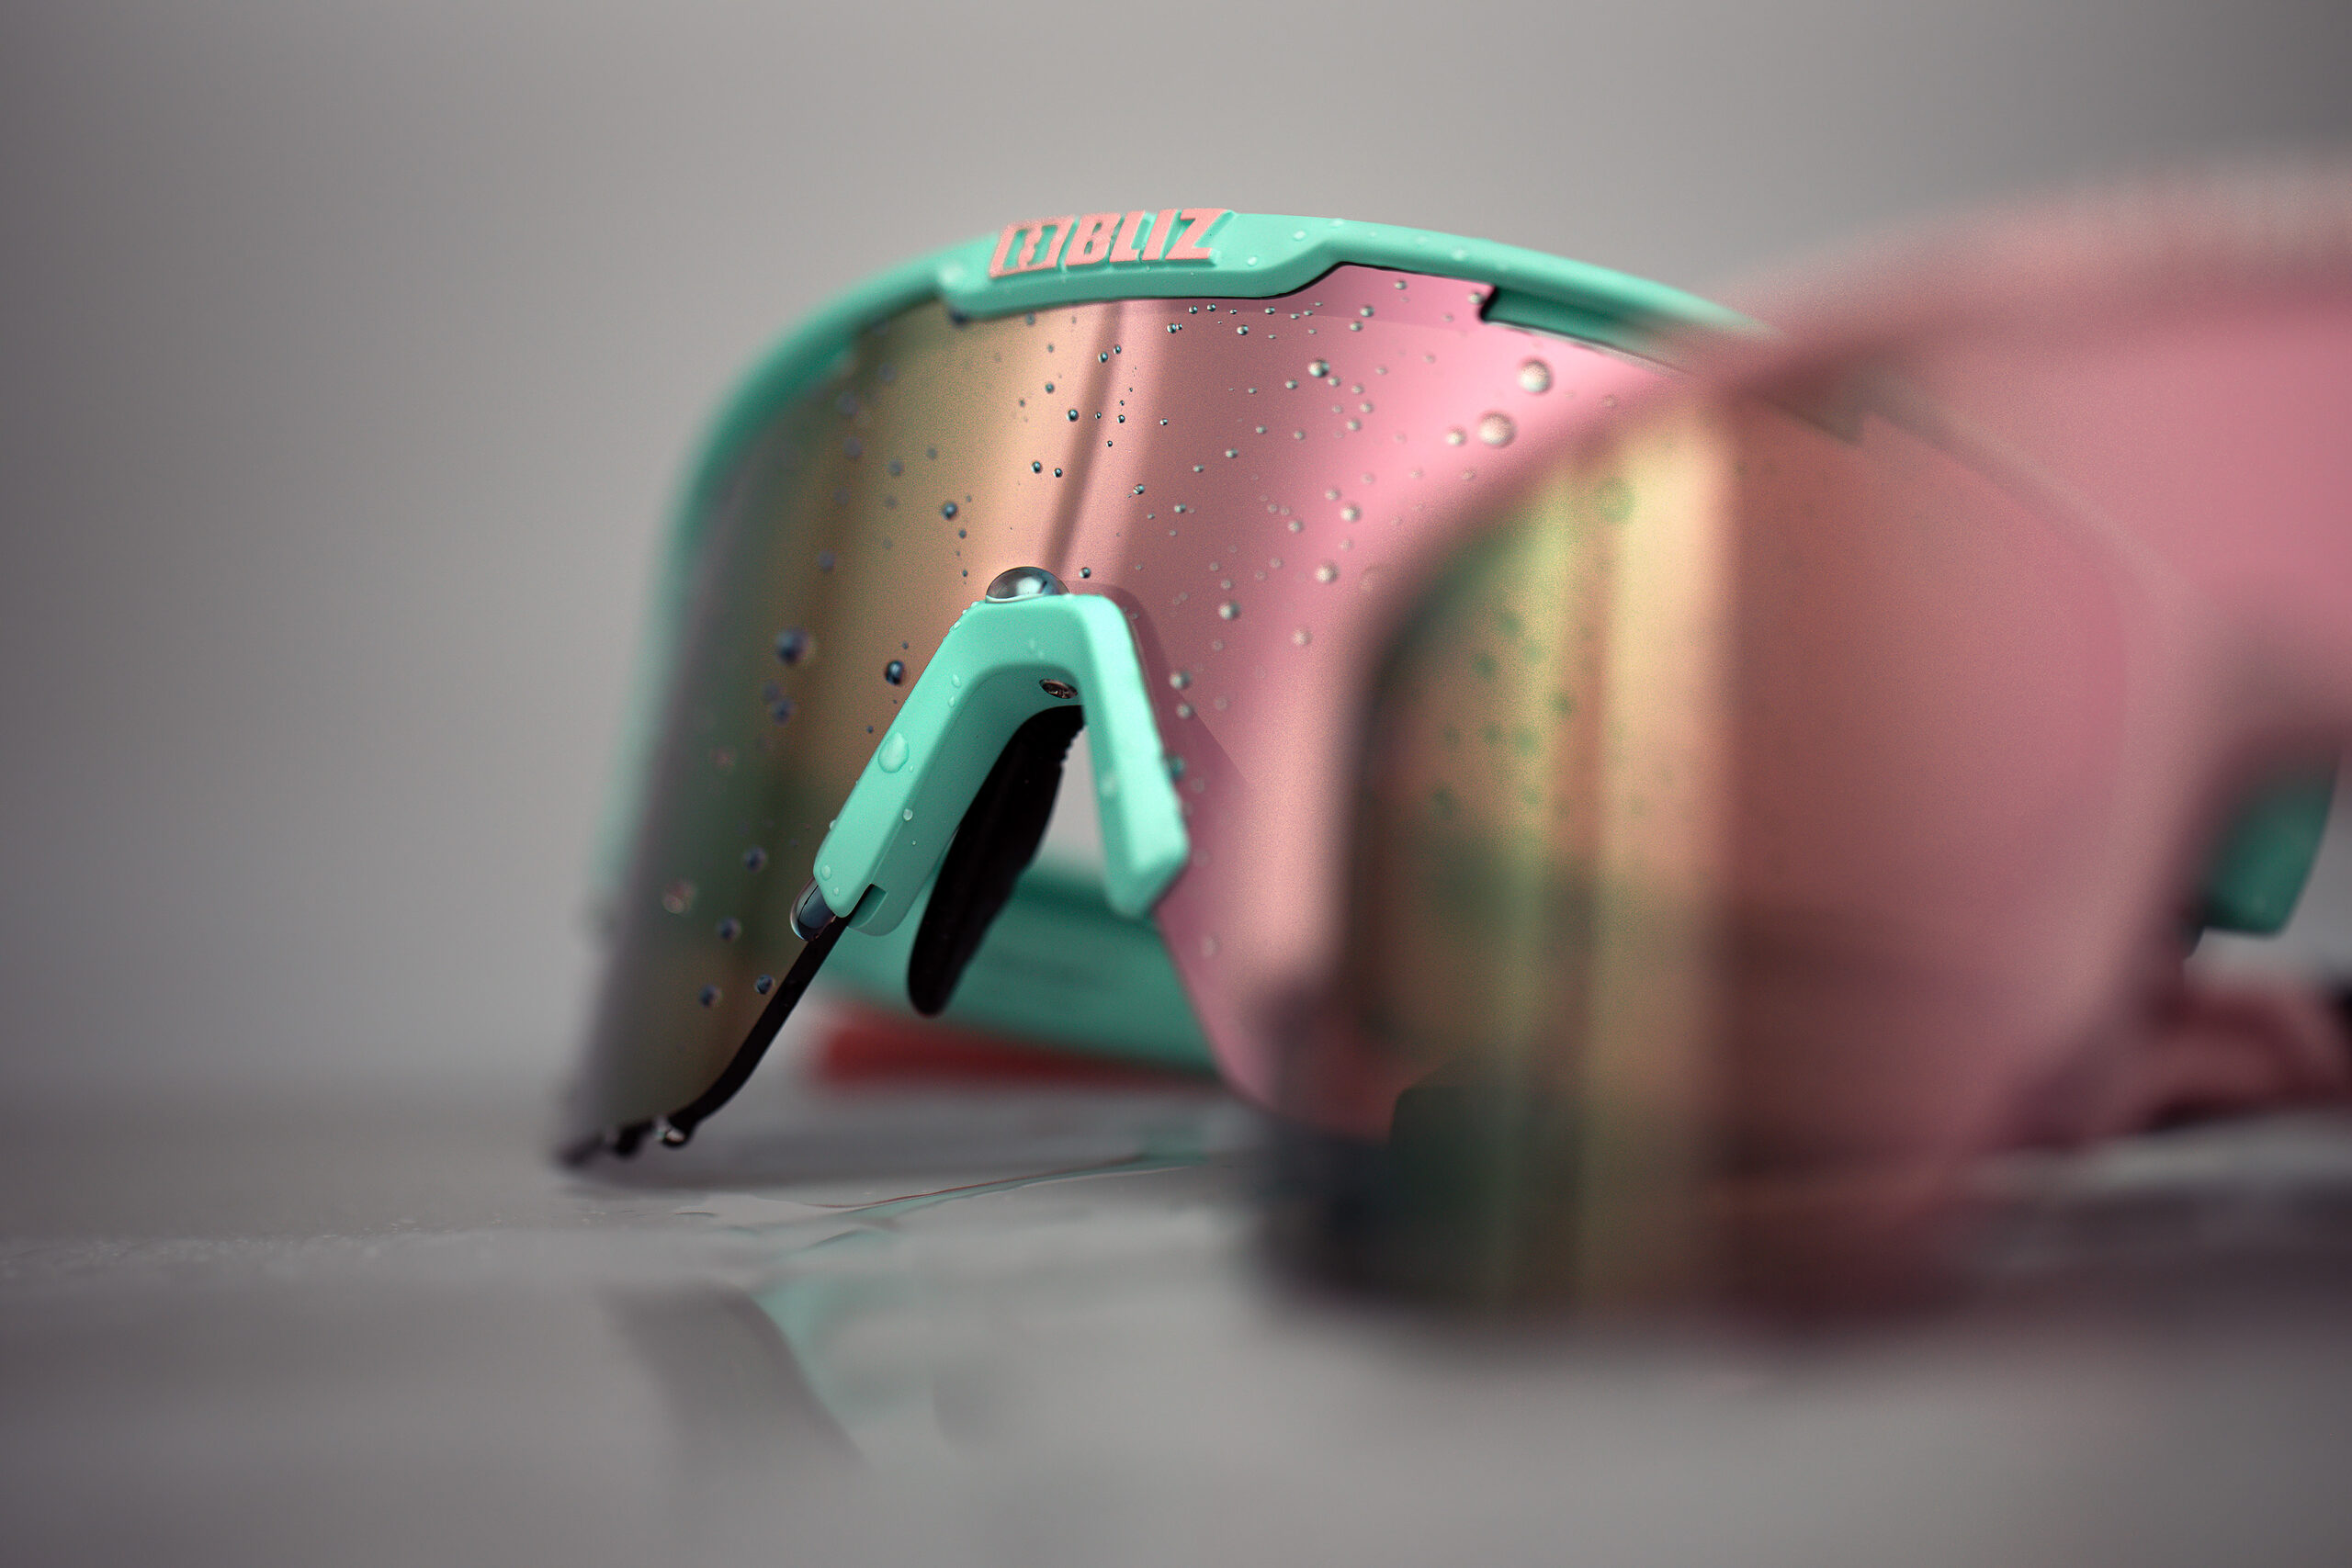 52104-39_matrix-bliz sunglasses_studio_sportsglasses_detail1